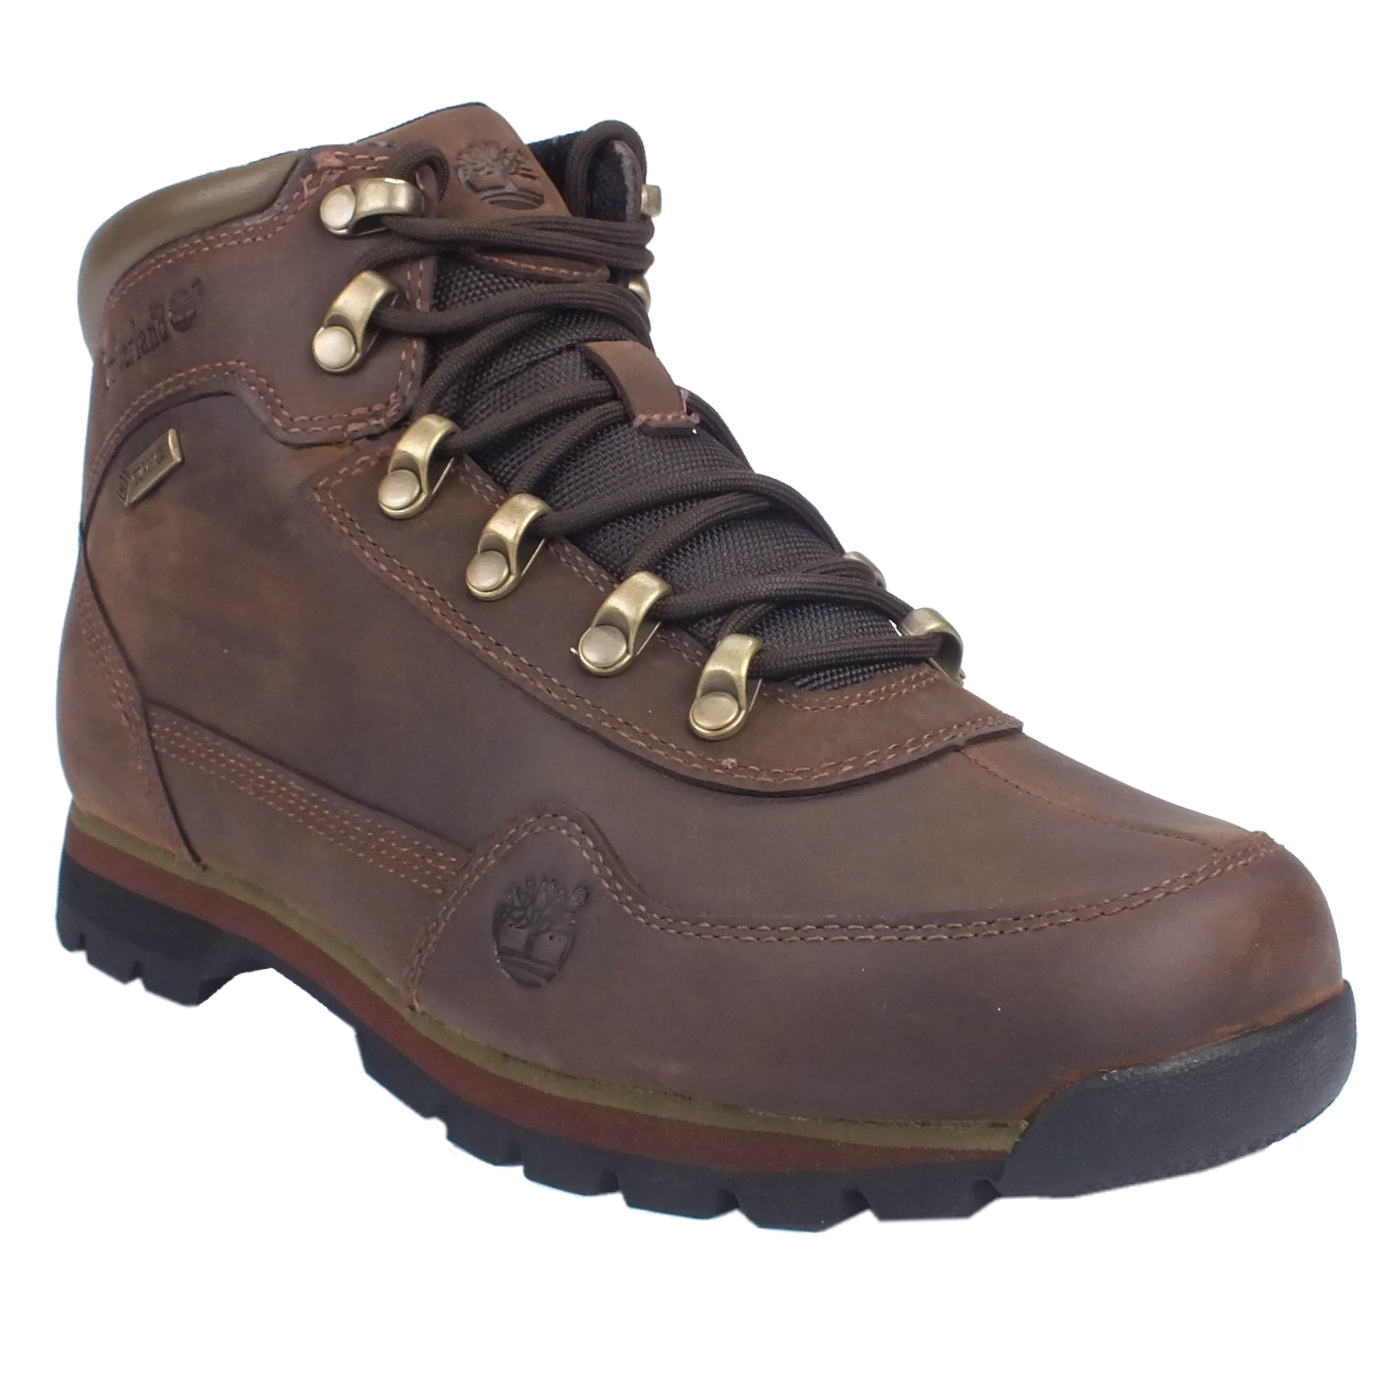 timberland euro hiker 6660a gtx gore tex schuhe wanderschuhe herren braun ebay. Black Bedroom Furniture Sets. Home Design Ideas